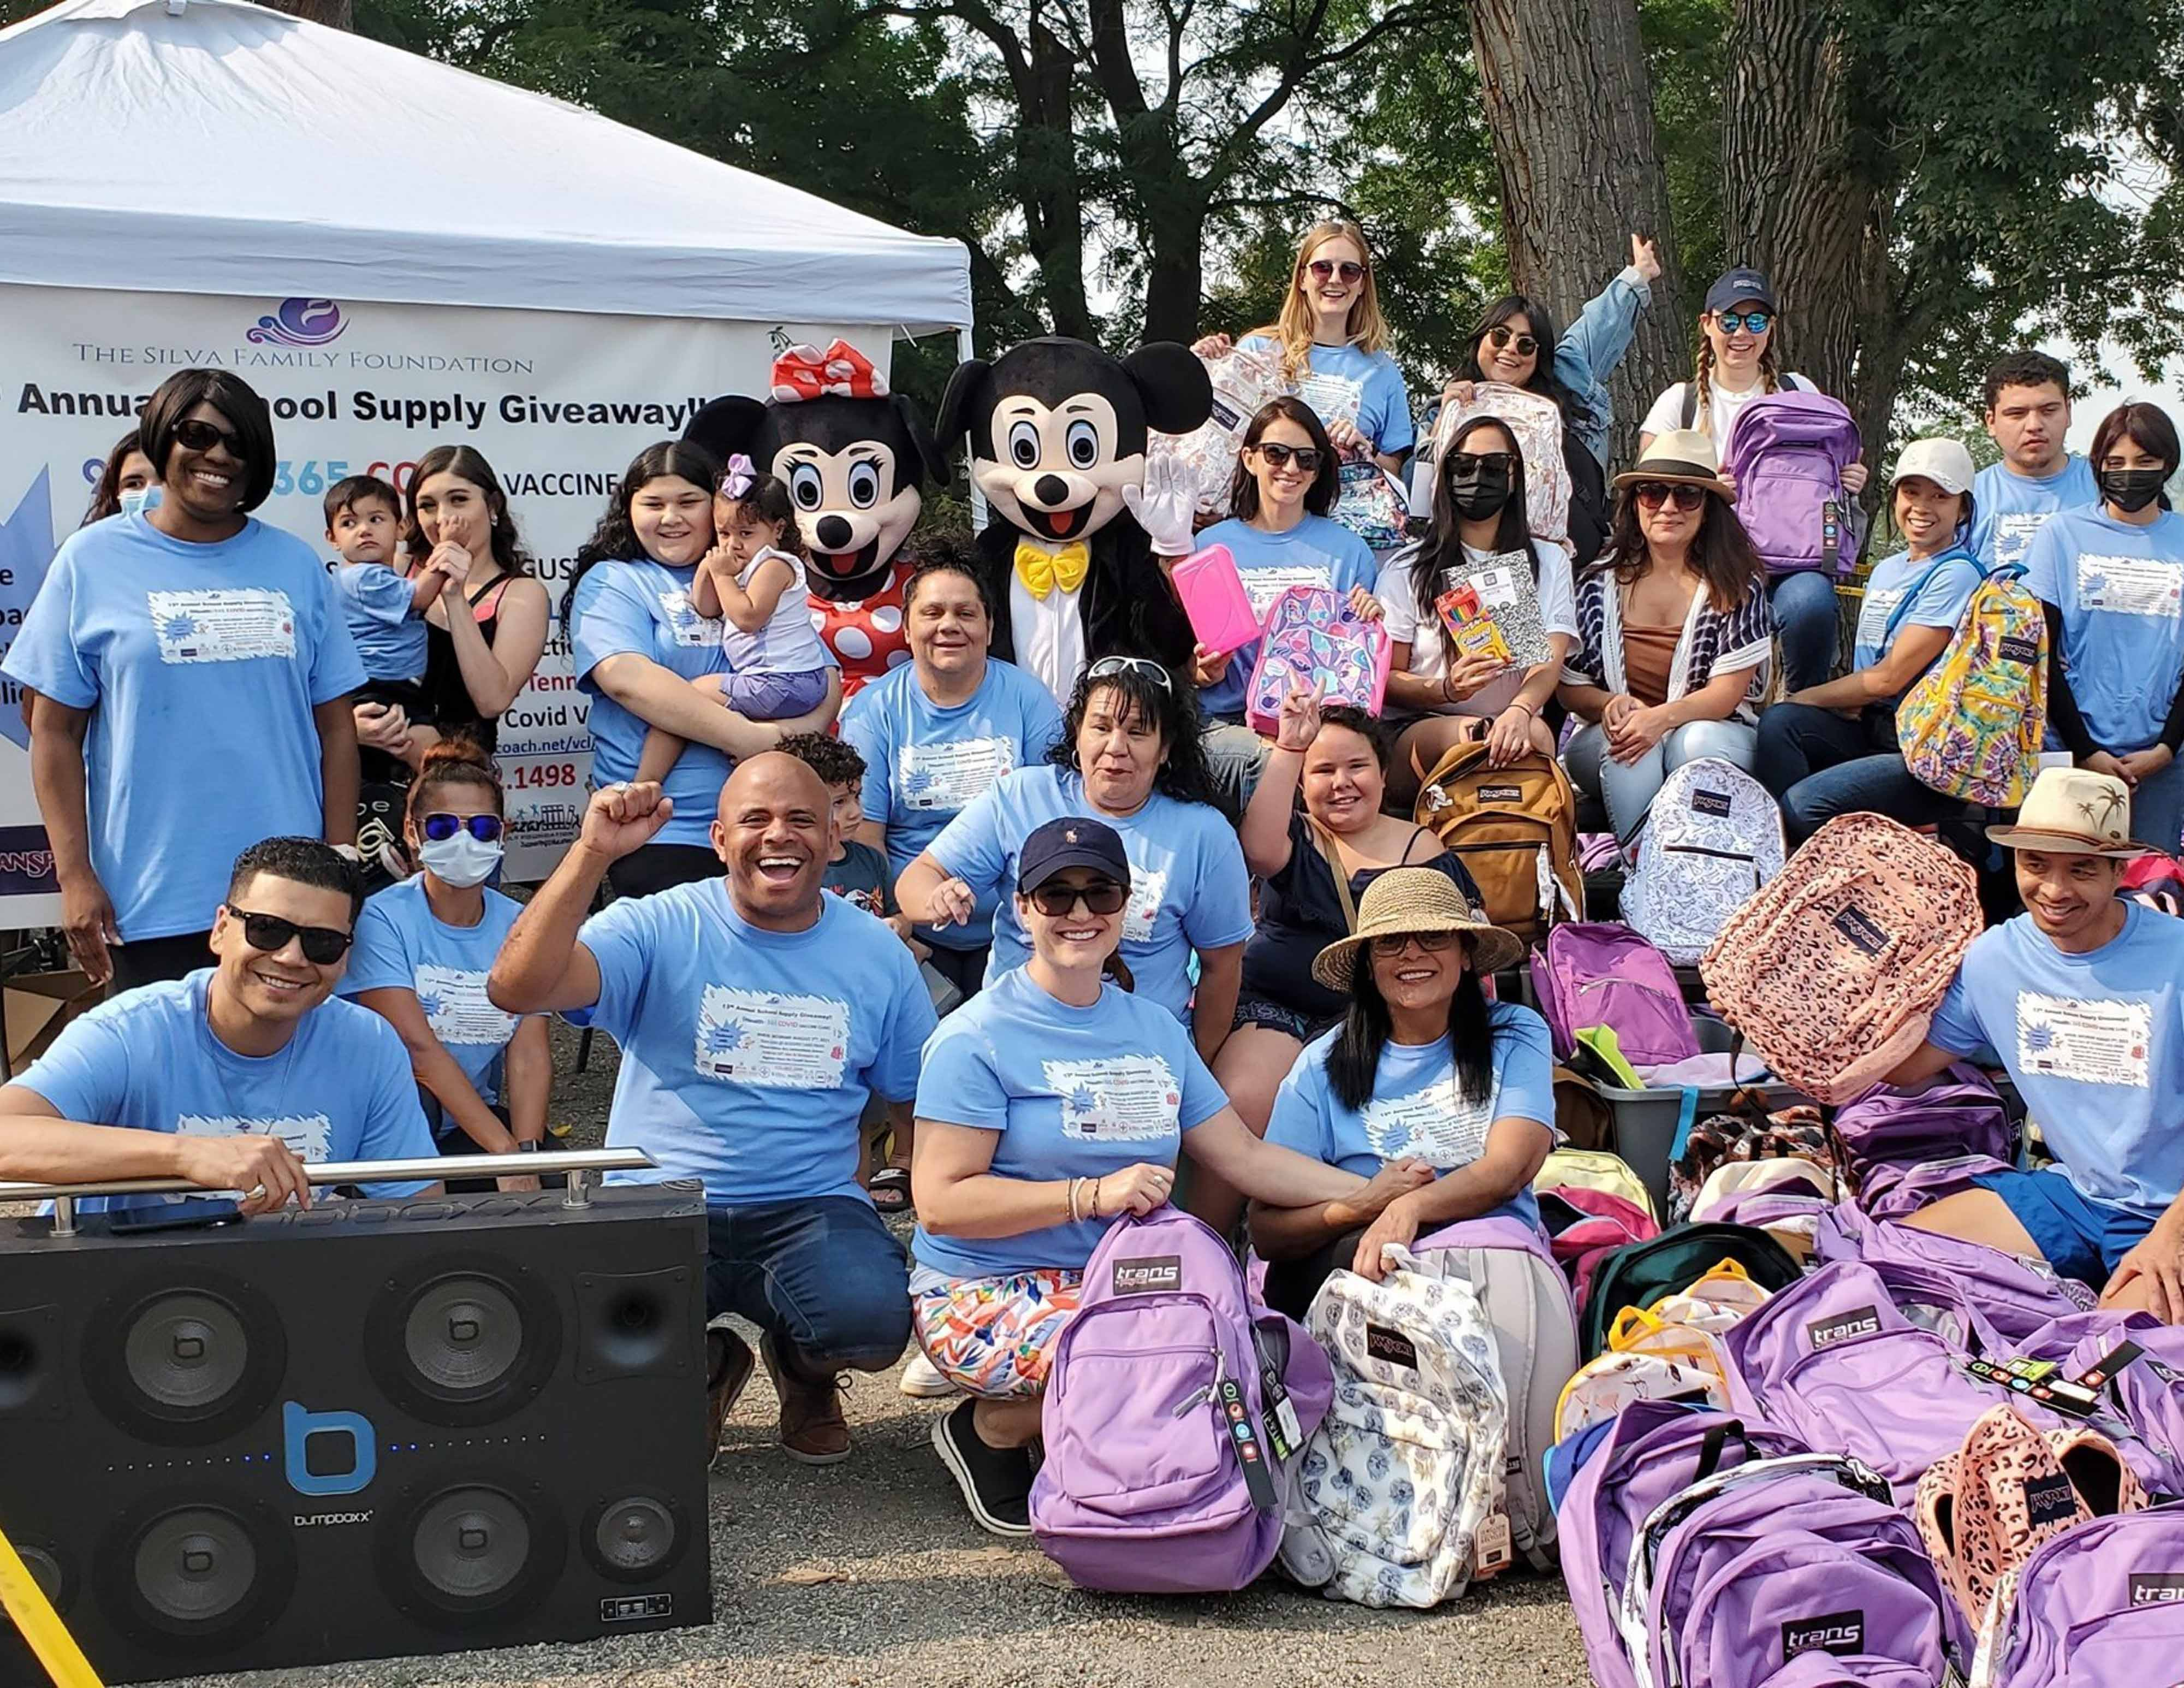 Denver School Board candidate Jose Silva, center left, poses with about two dozen people during a backpack and school supply drive. Many are wearing sky blue T-shirts and two are dressed as Mickey Mouse.